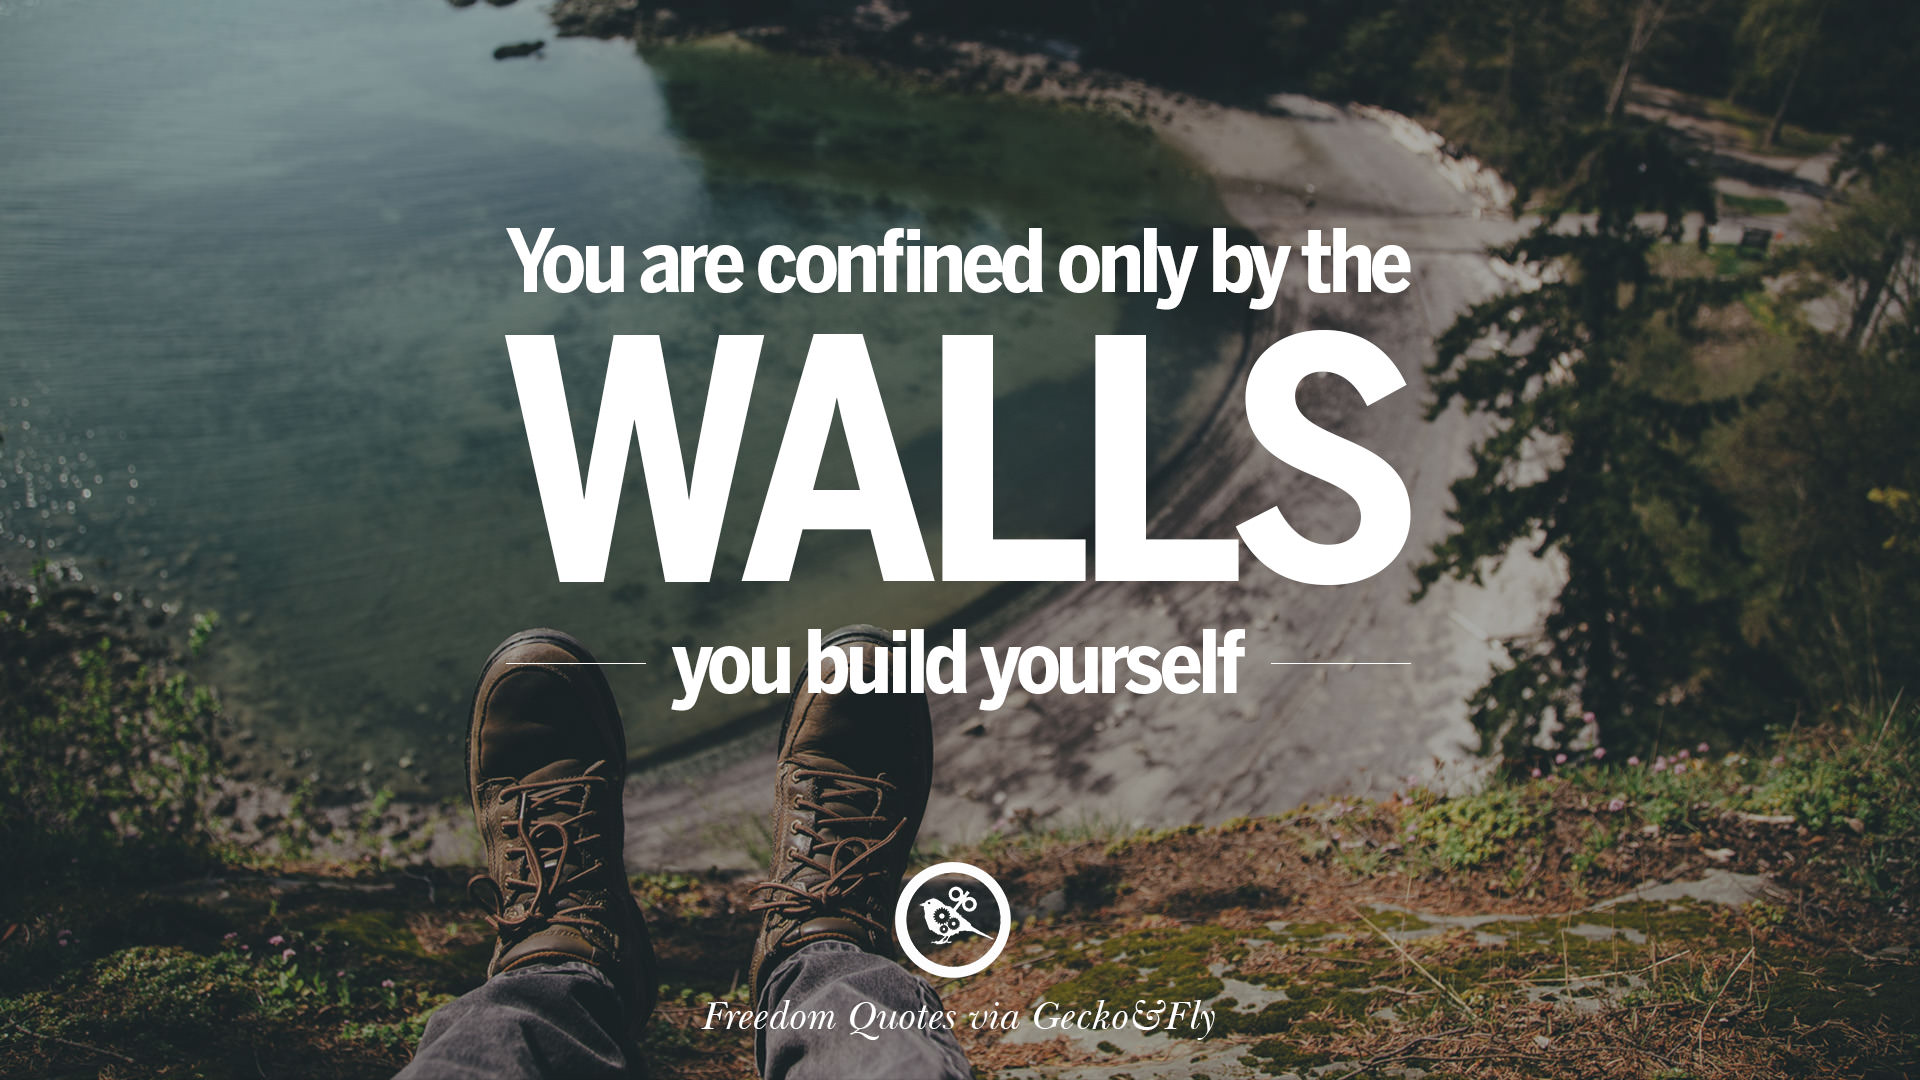 Motivational Quotes Pinterest: 30 Inspiring Quotes About Freedom And Liberty